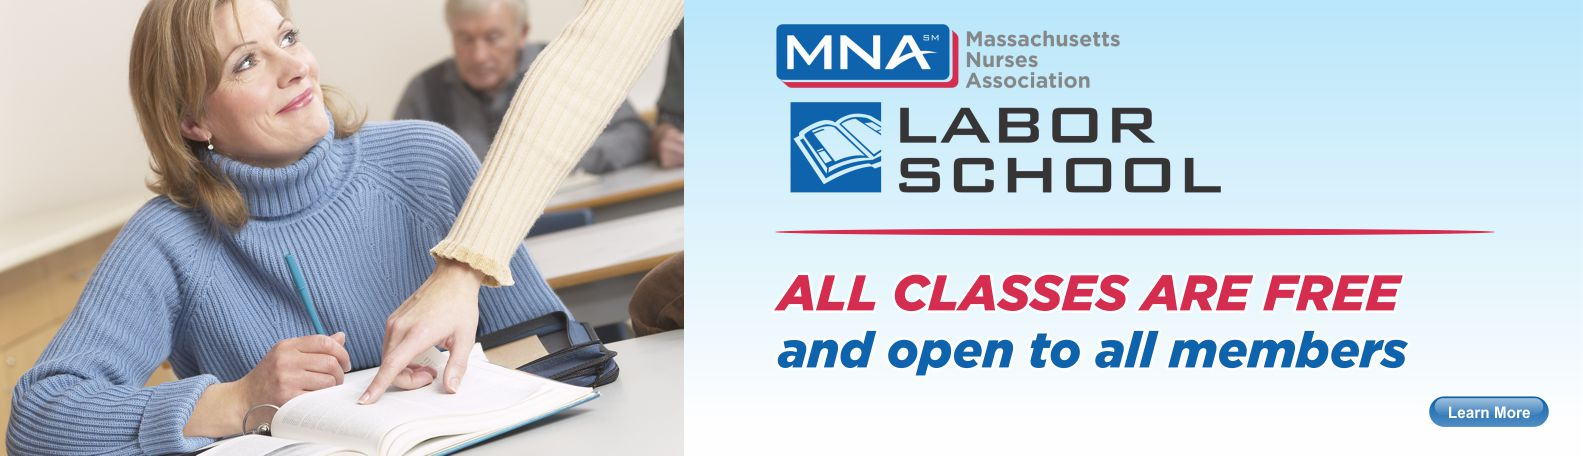 MNA Labor School Classes Free to MNA Members